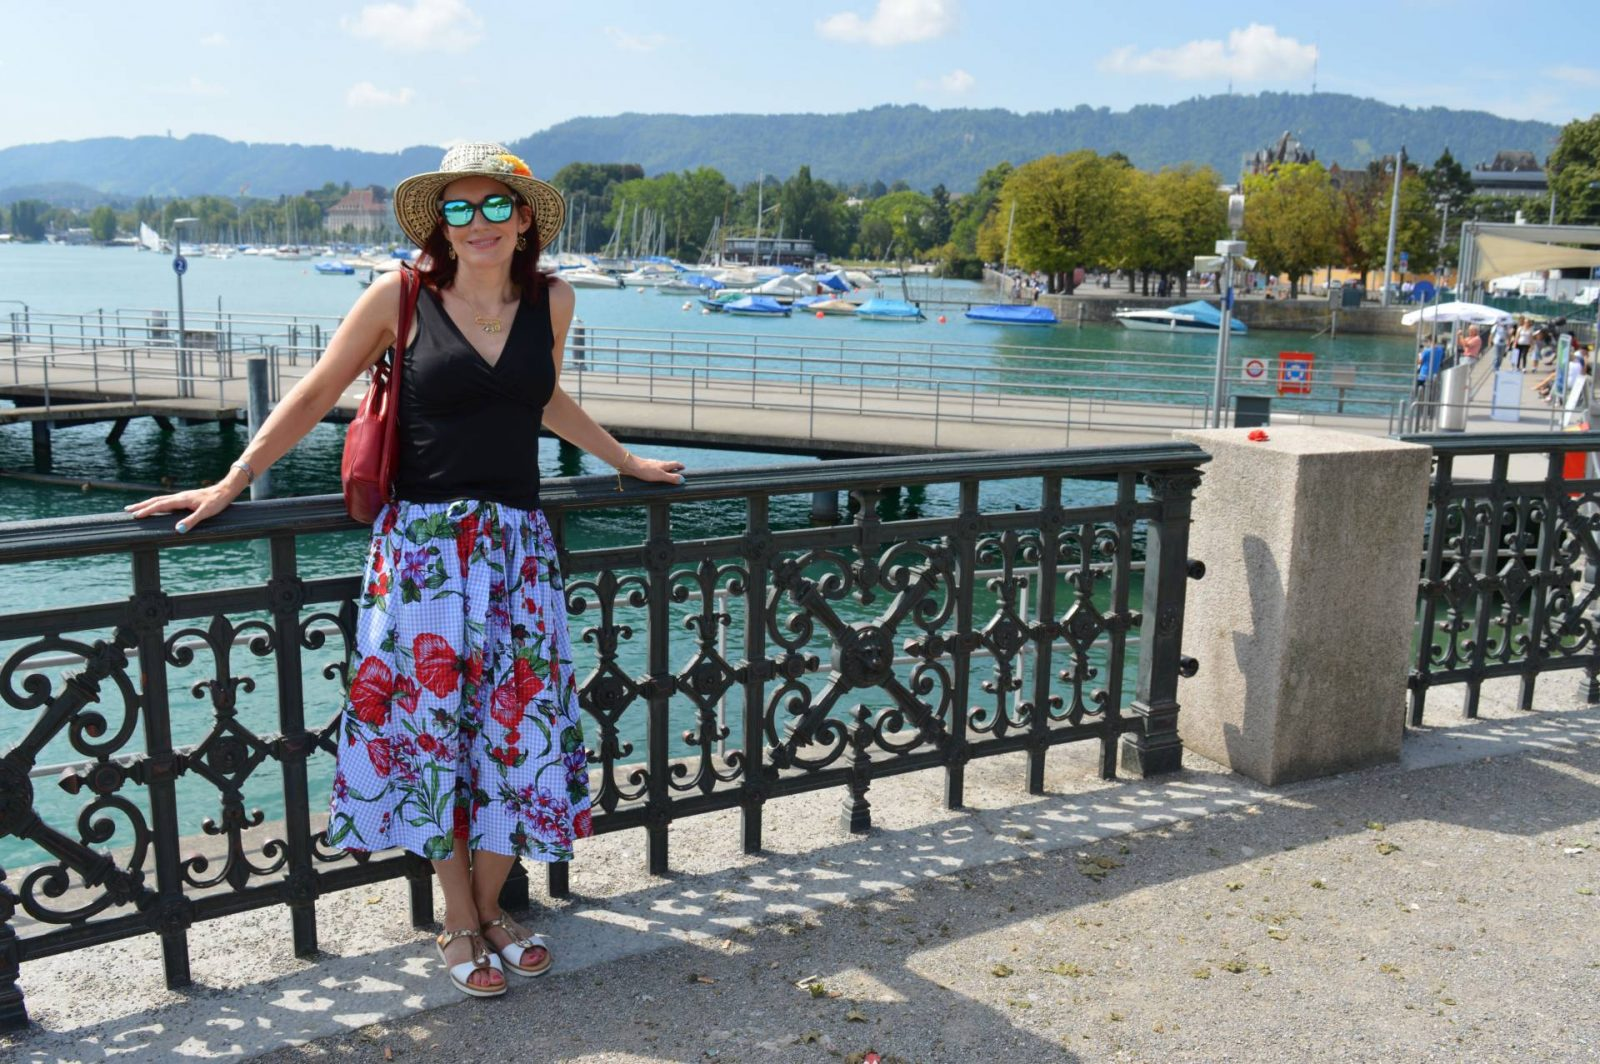 A Comfortable, Chic Outfit For a Day Sightseeing in Zurich Zara gingham floral print skirt